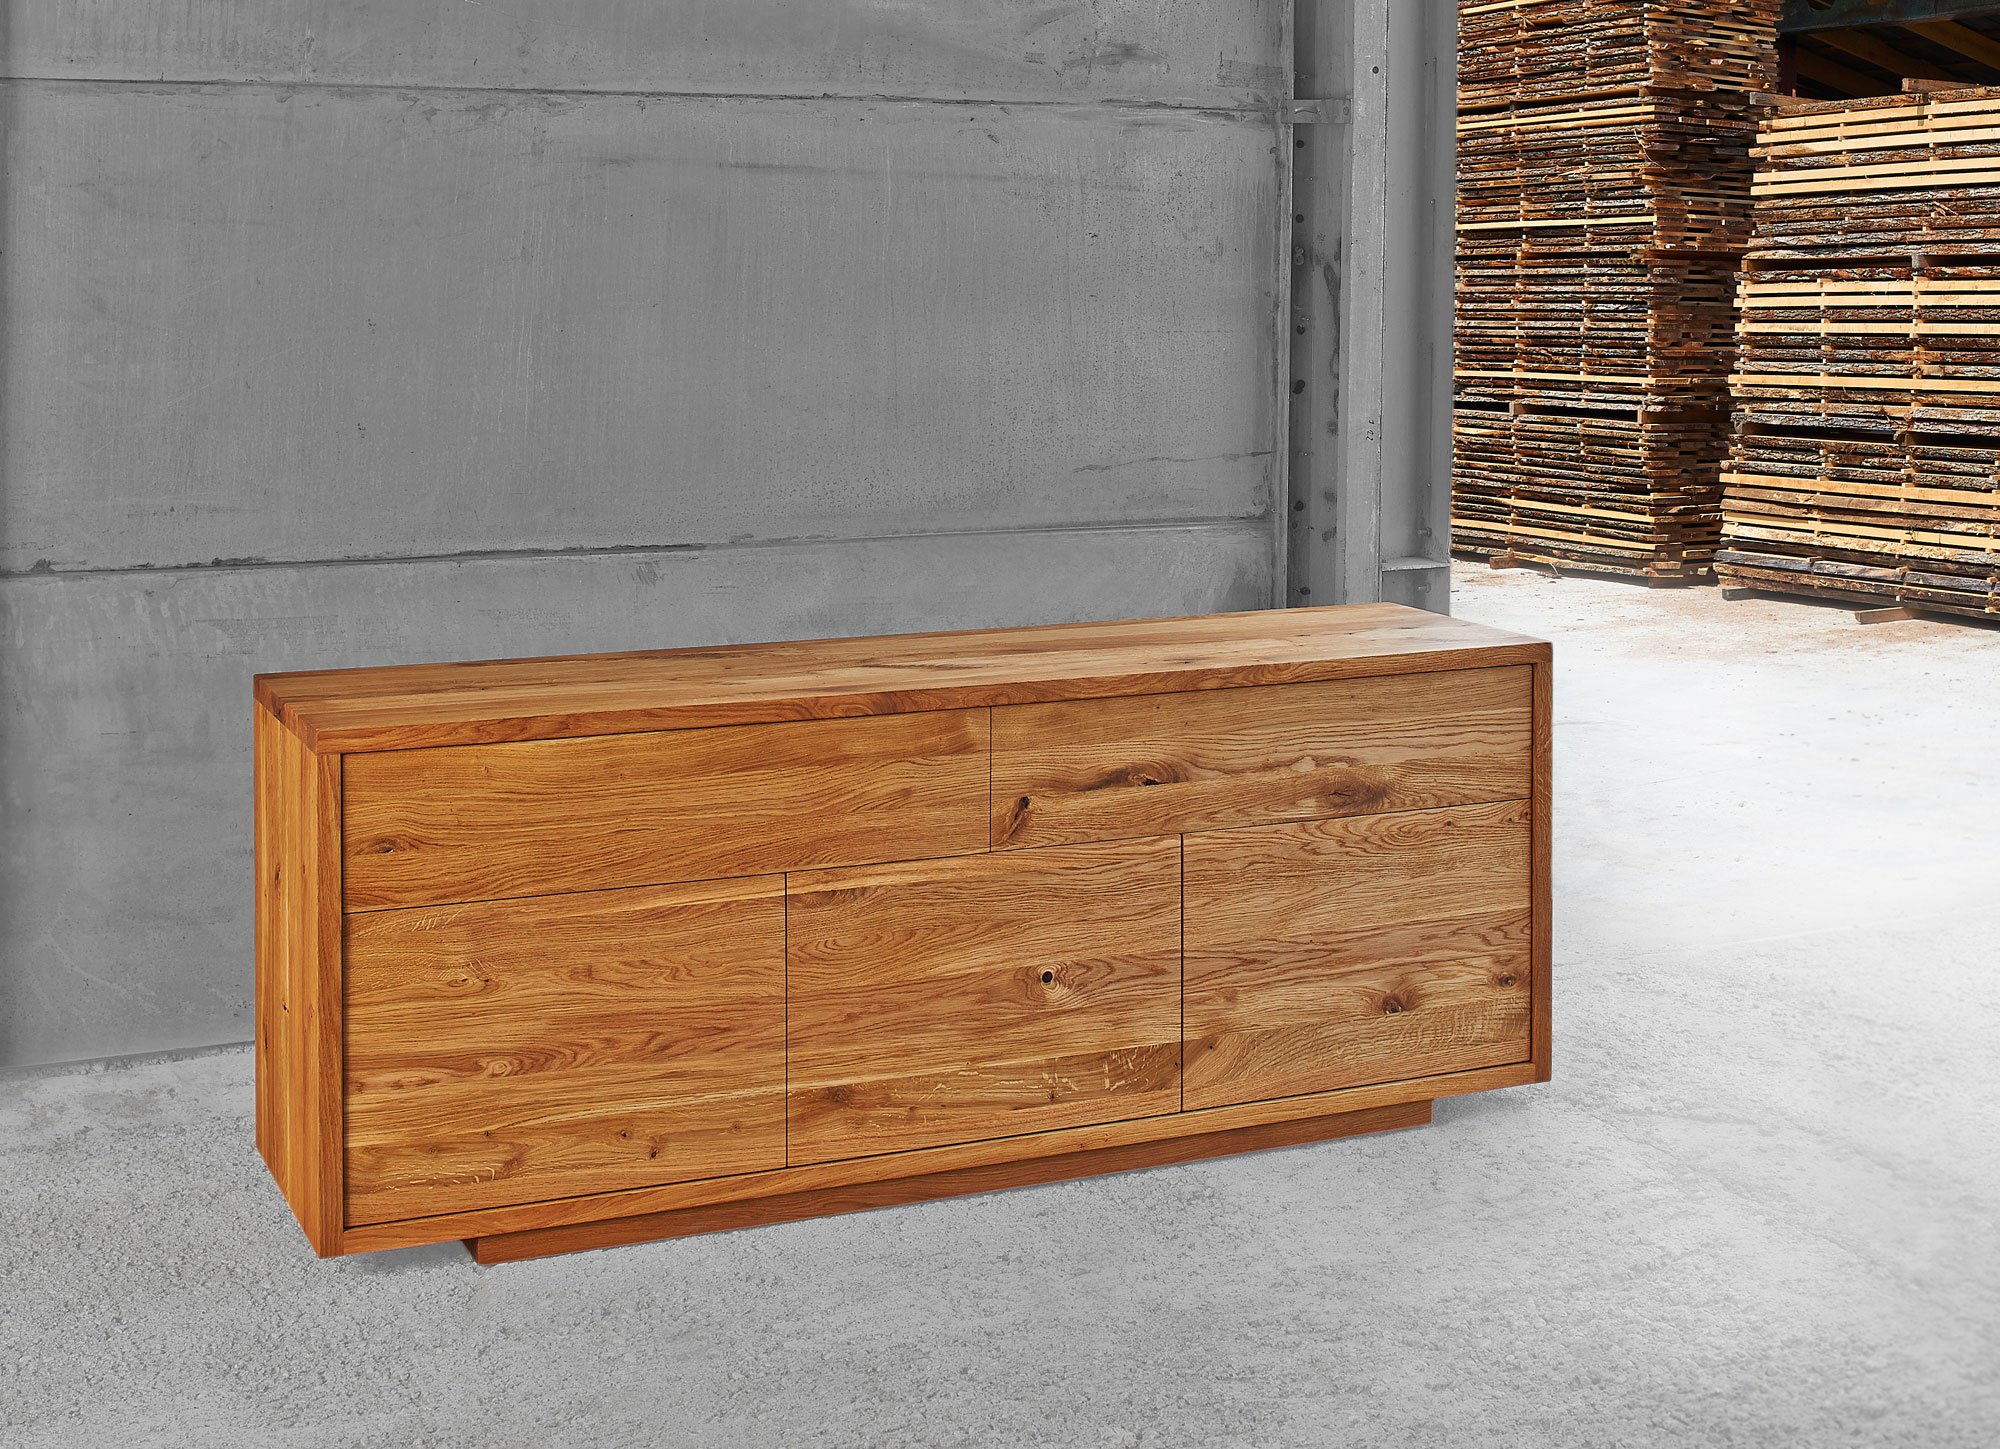 Wooden Designer Sideboard LINEA 0675a custom made in solid wood by vitamin design